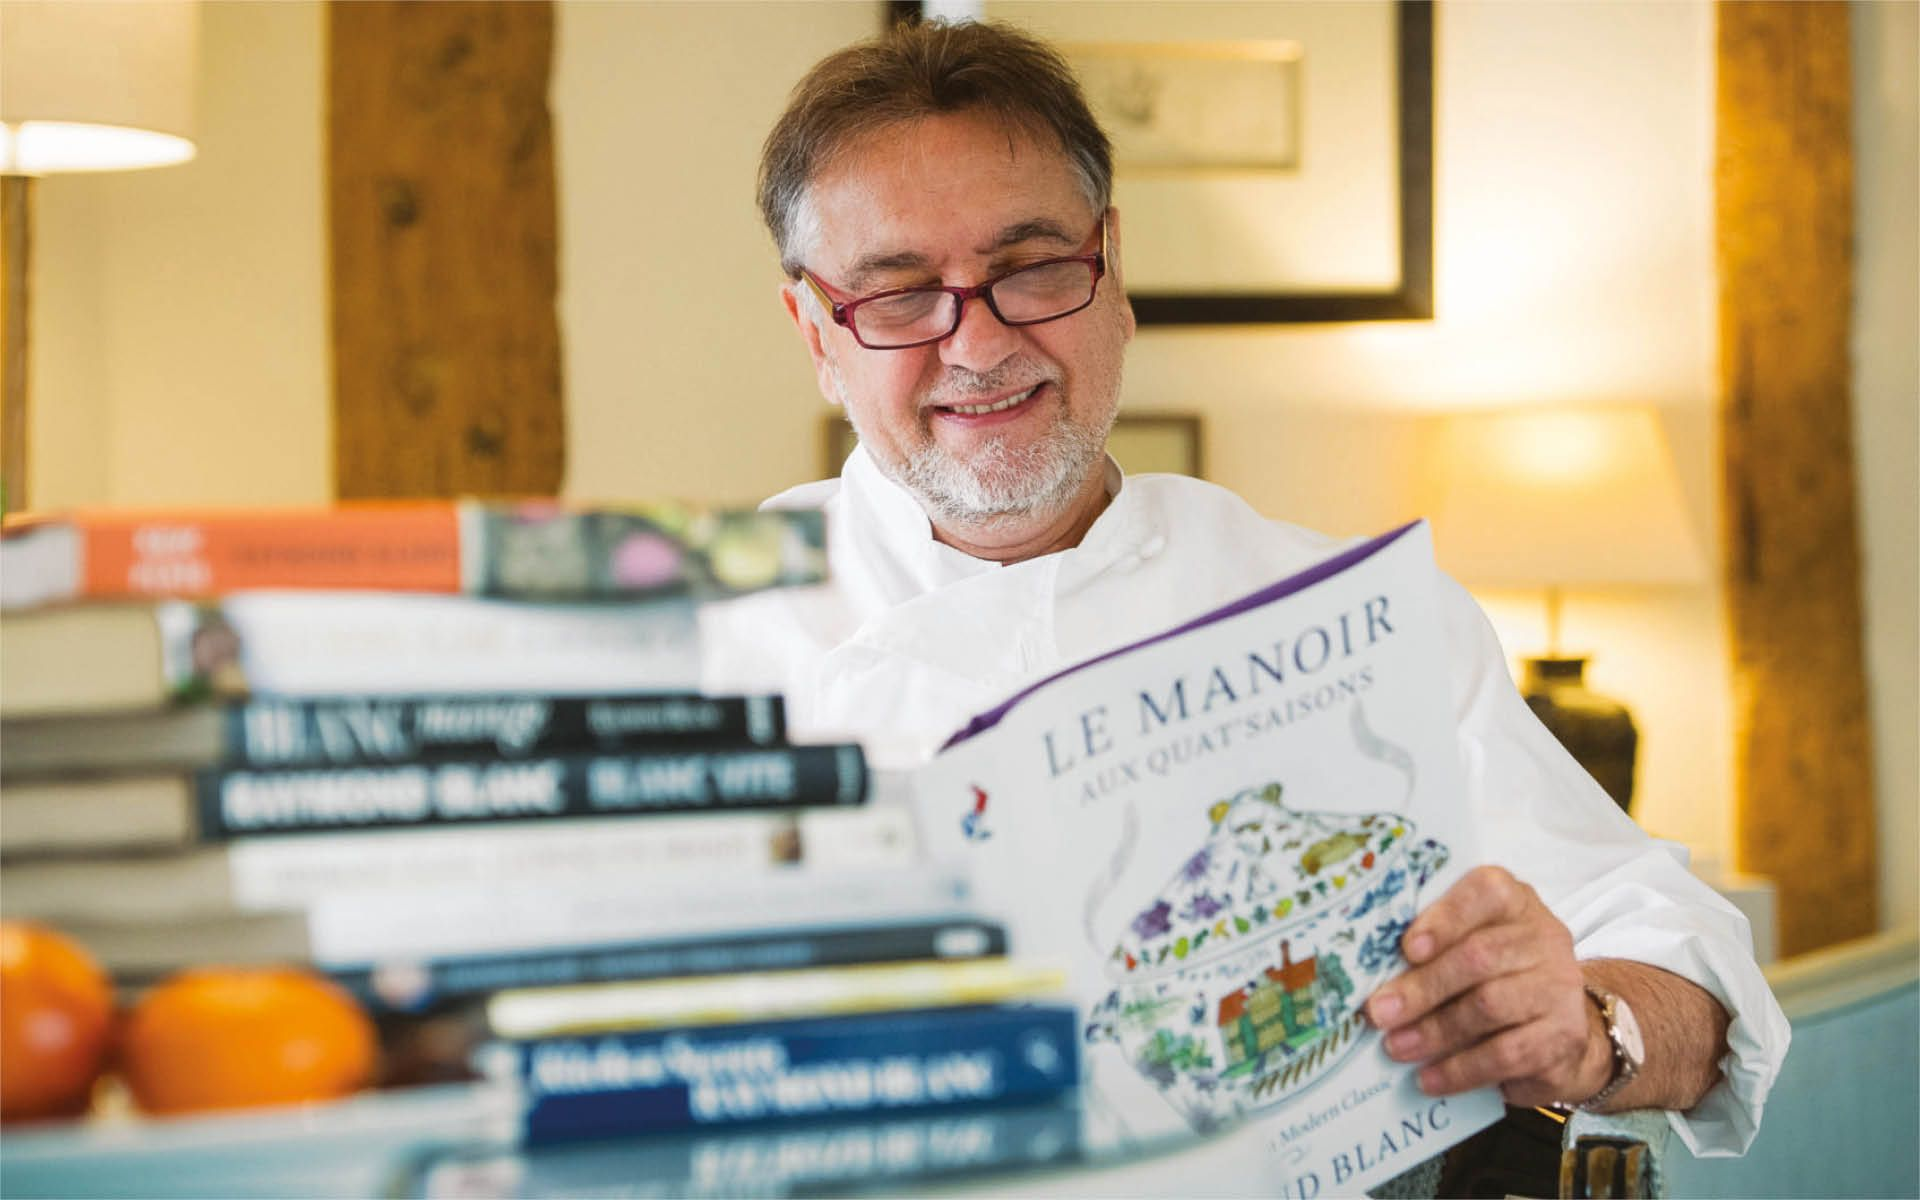 5 Minutes With... Raymond Blanc, Knighted Michelin-Starred Chef